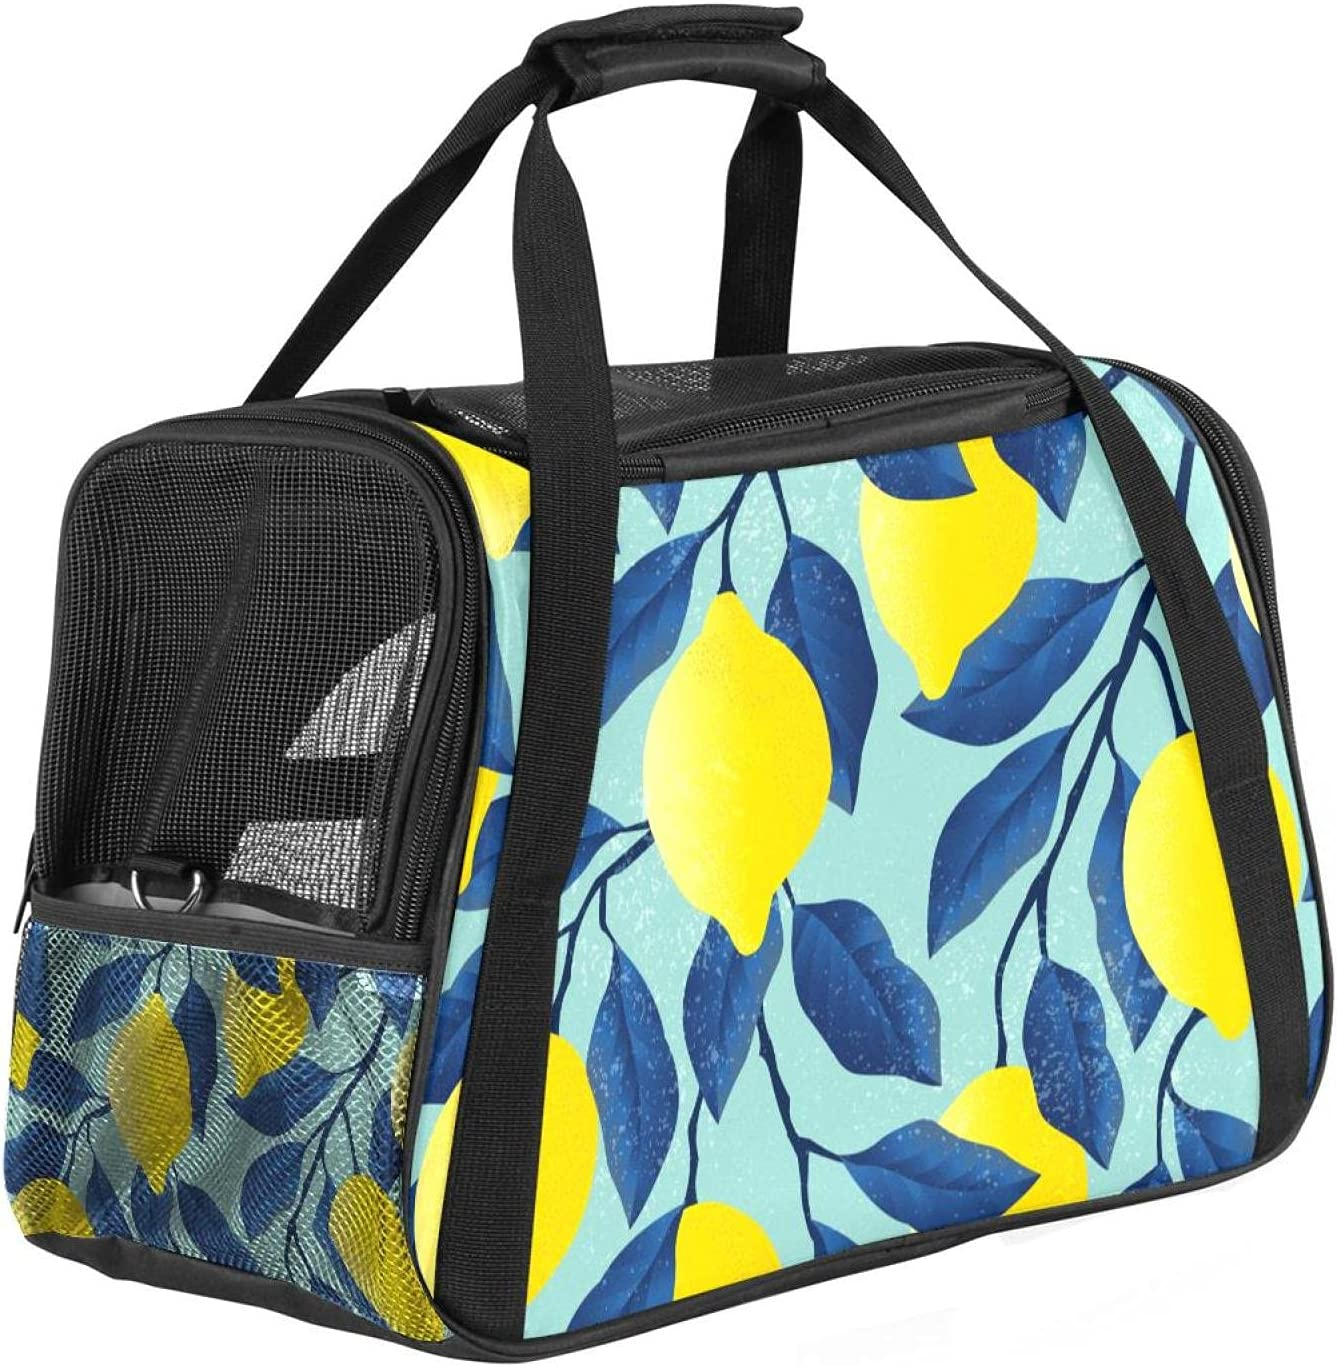 overseas Airline Approved Soft Sided Pet Series Regular dealer Low Profile Carrier Tote